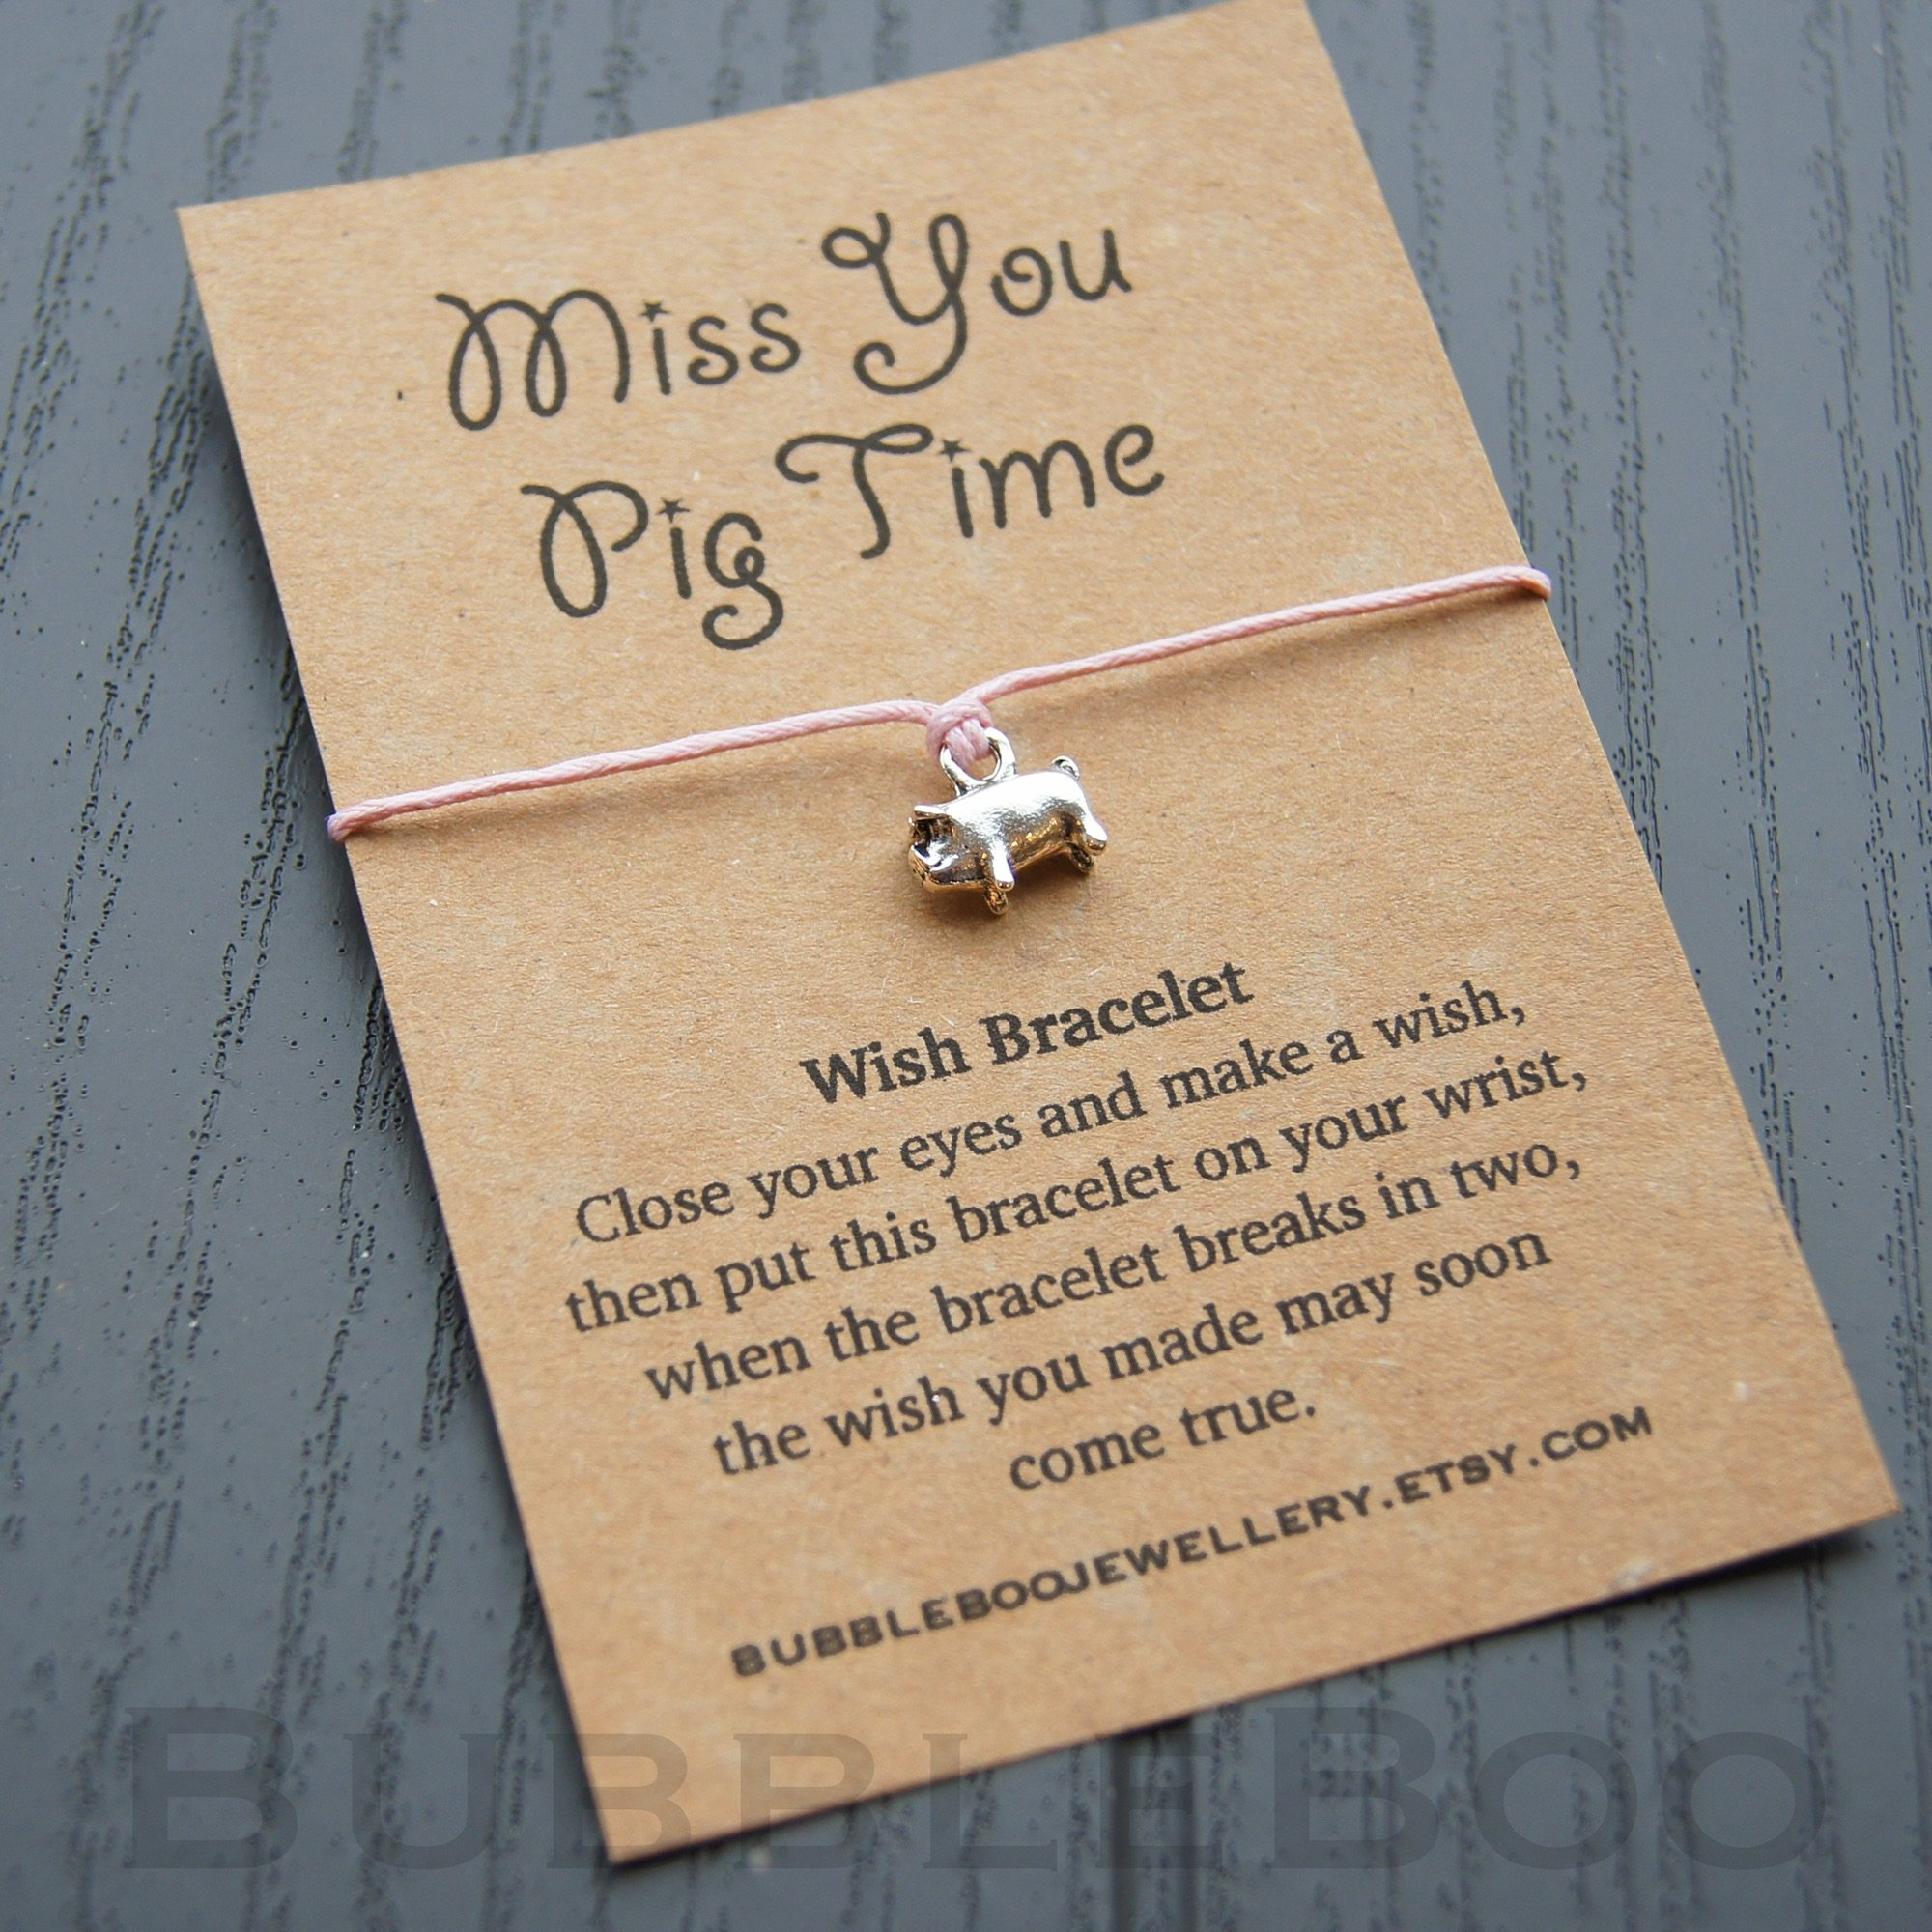 Miss You Pig Time